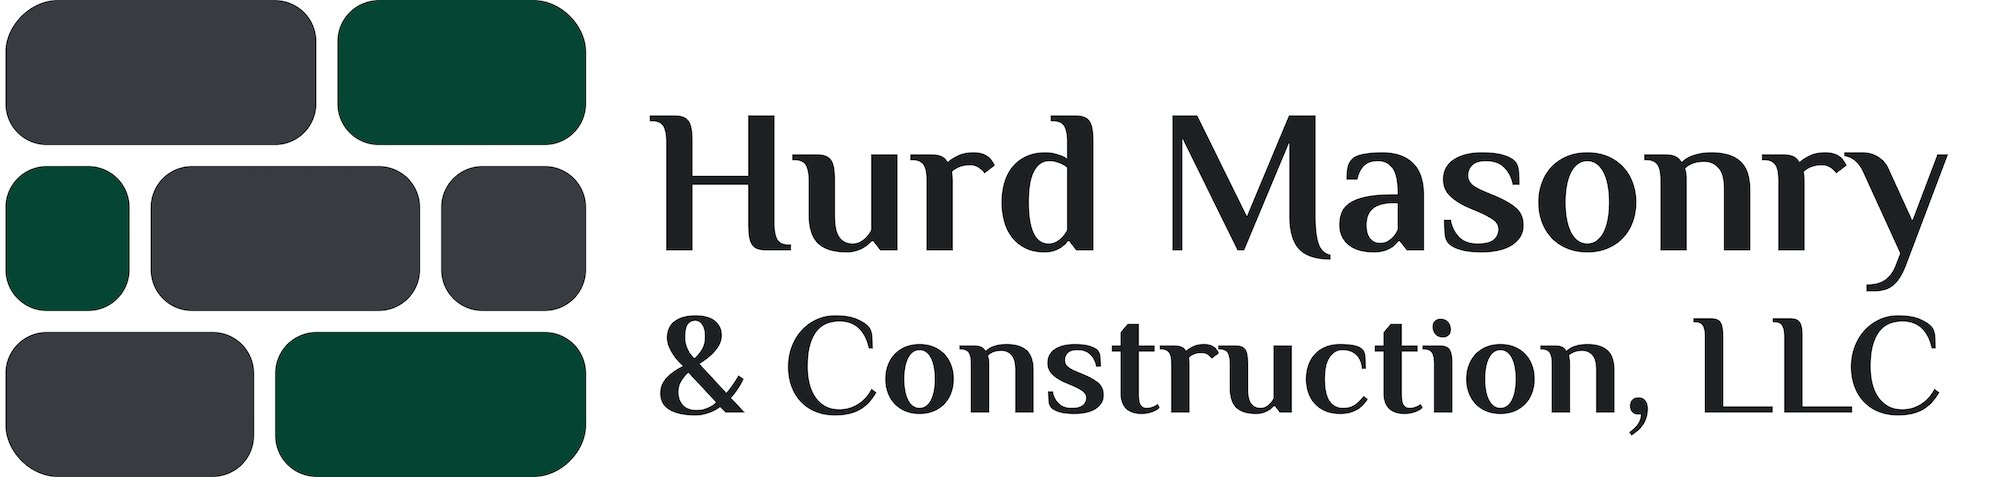 Hurd Masonry & Construction